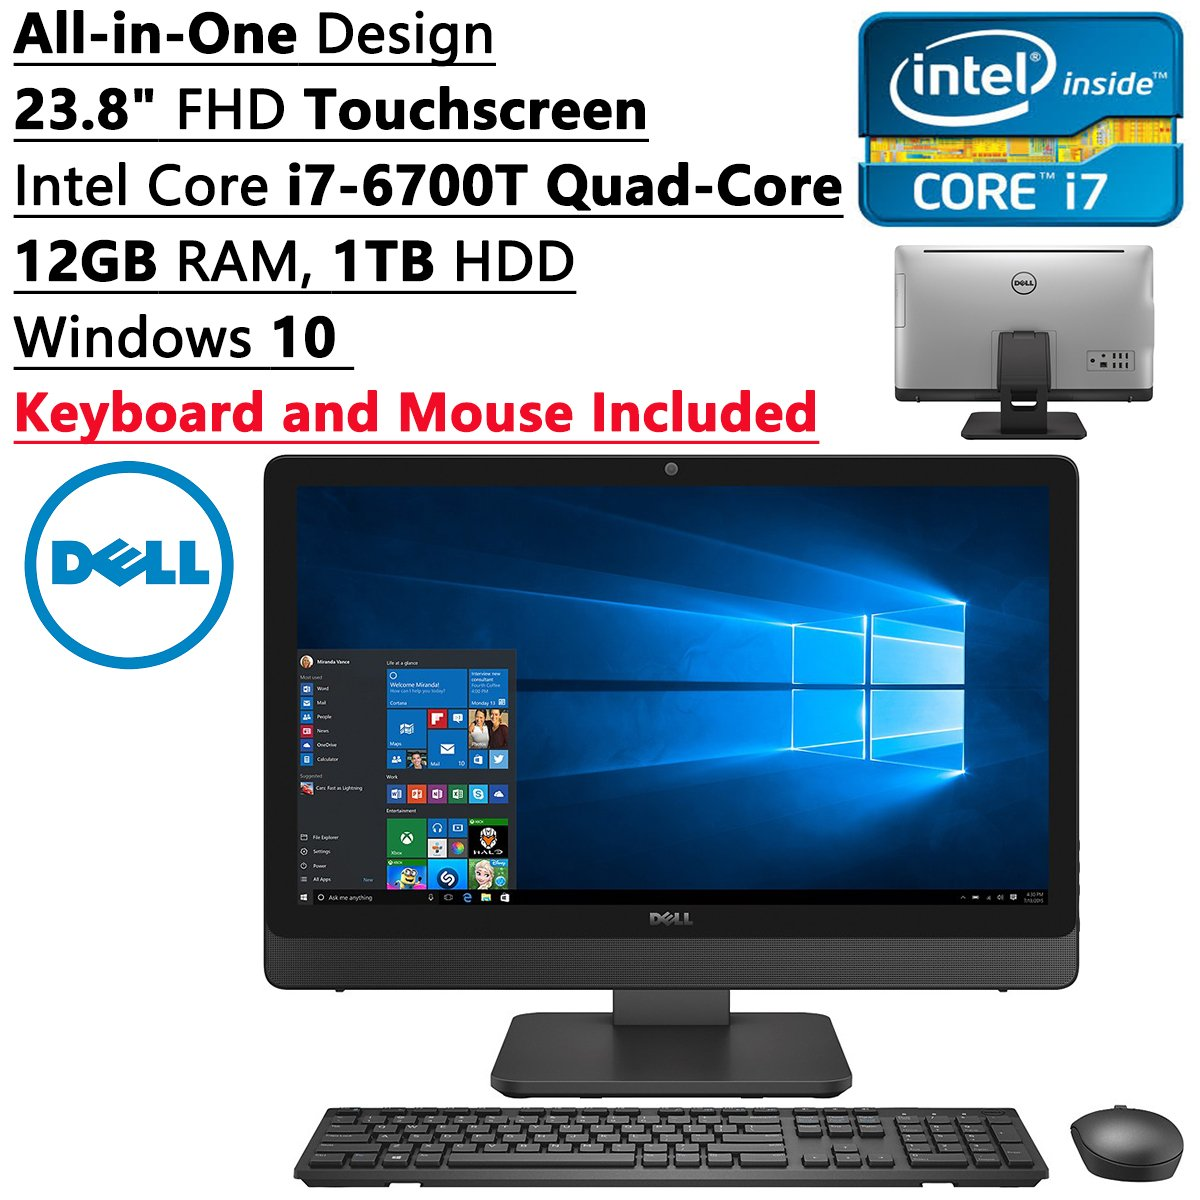 Acer Aspire 215inch Full Hd Allinone Desktop With Windows 10 Lenovo Ideacentre Aio 510 22ish Core I5 7100t 4gb Ddr4 1tb White Top Best All In One Touchscreen Computer 2016 2017 On Flipboard